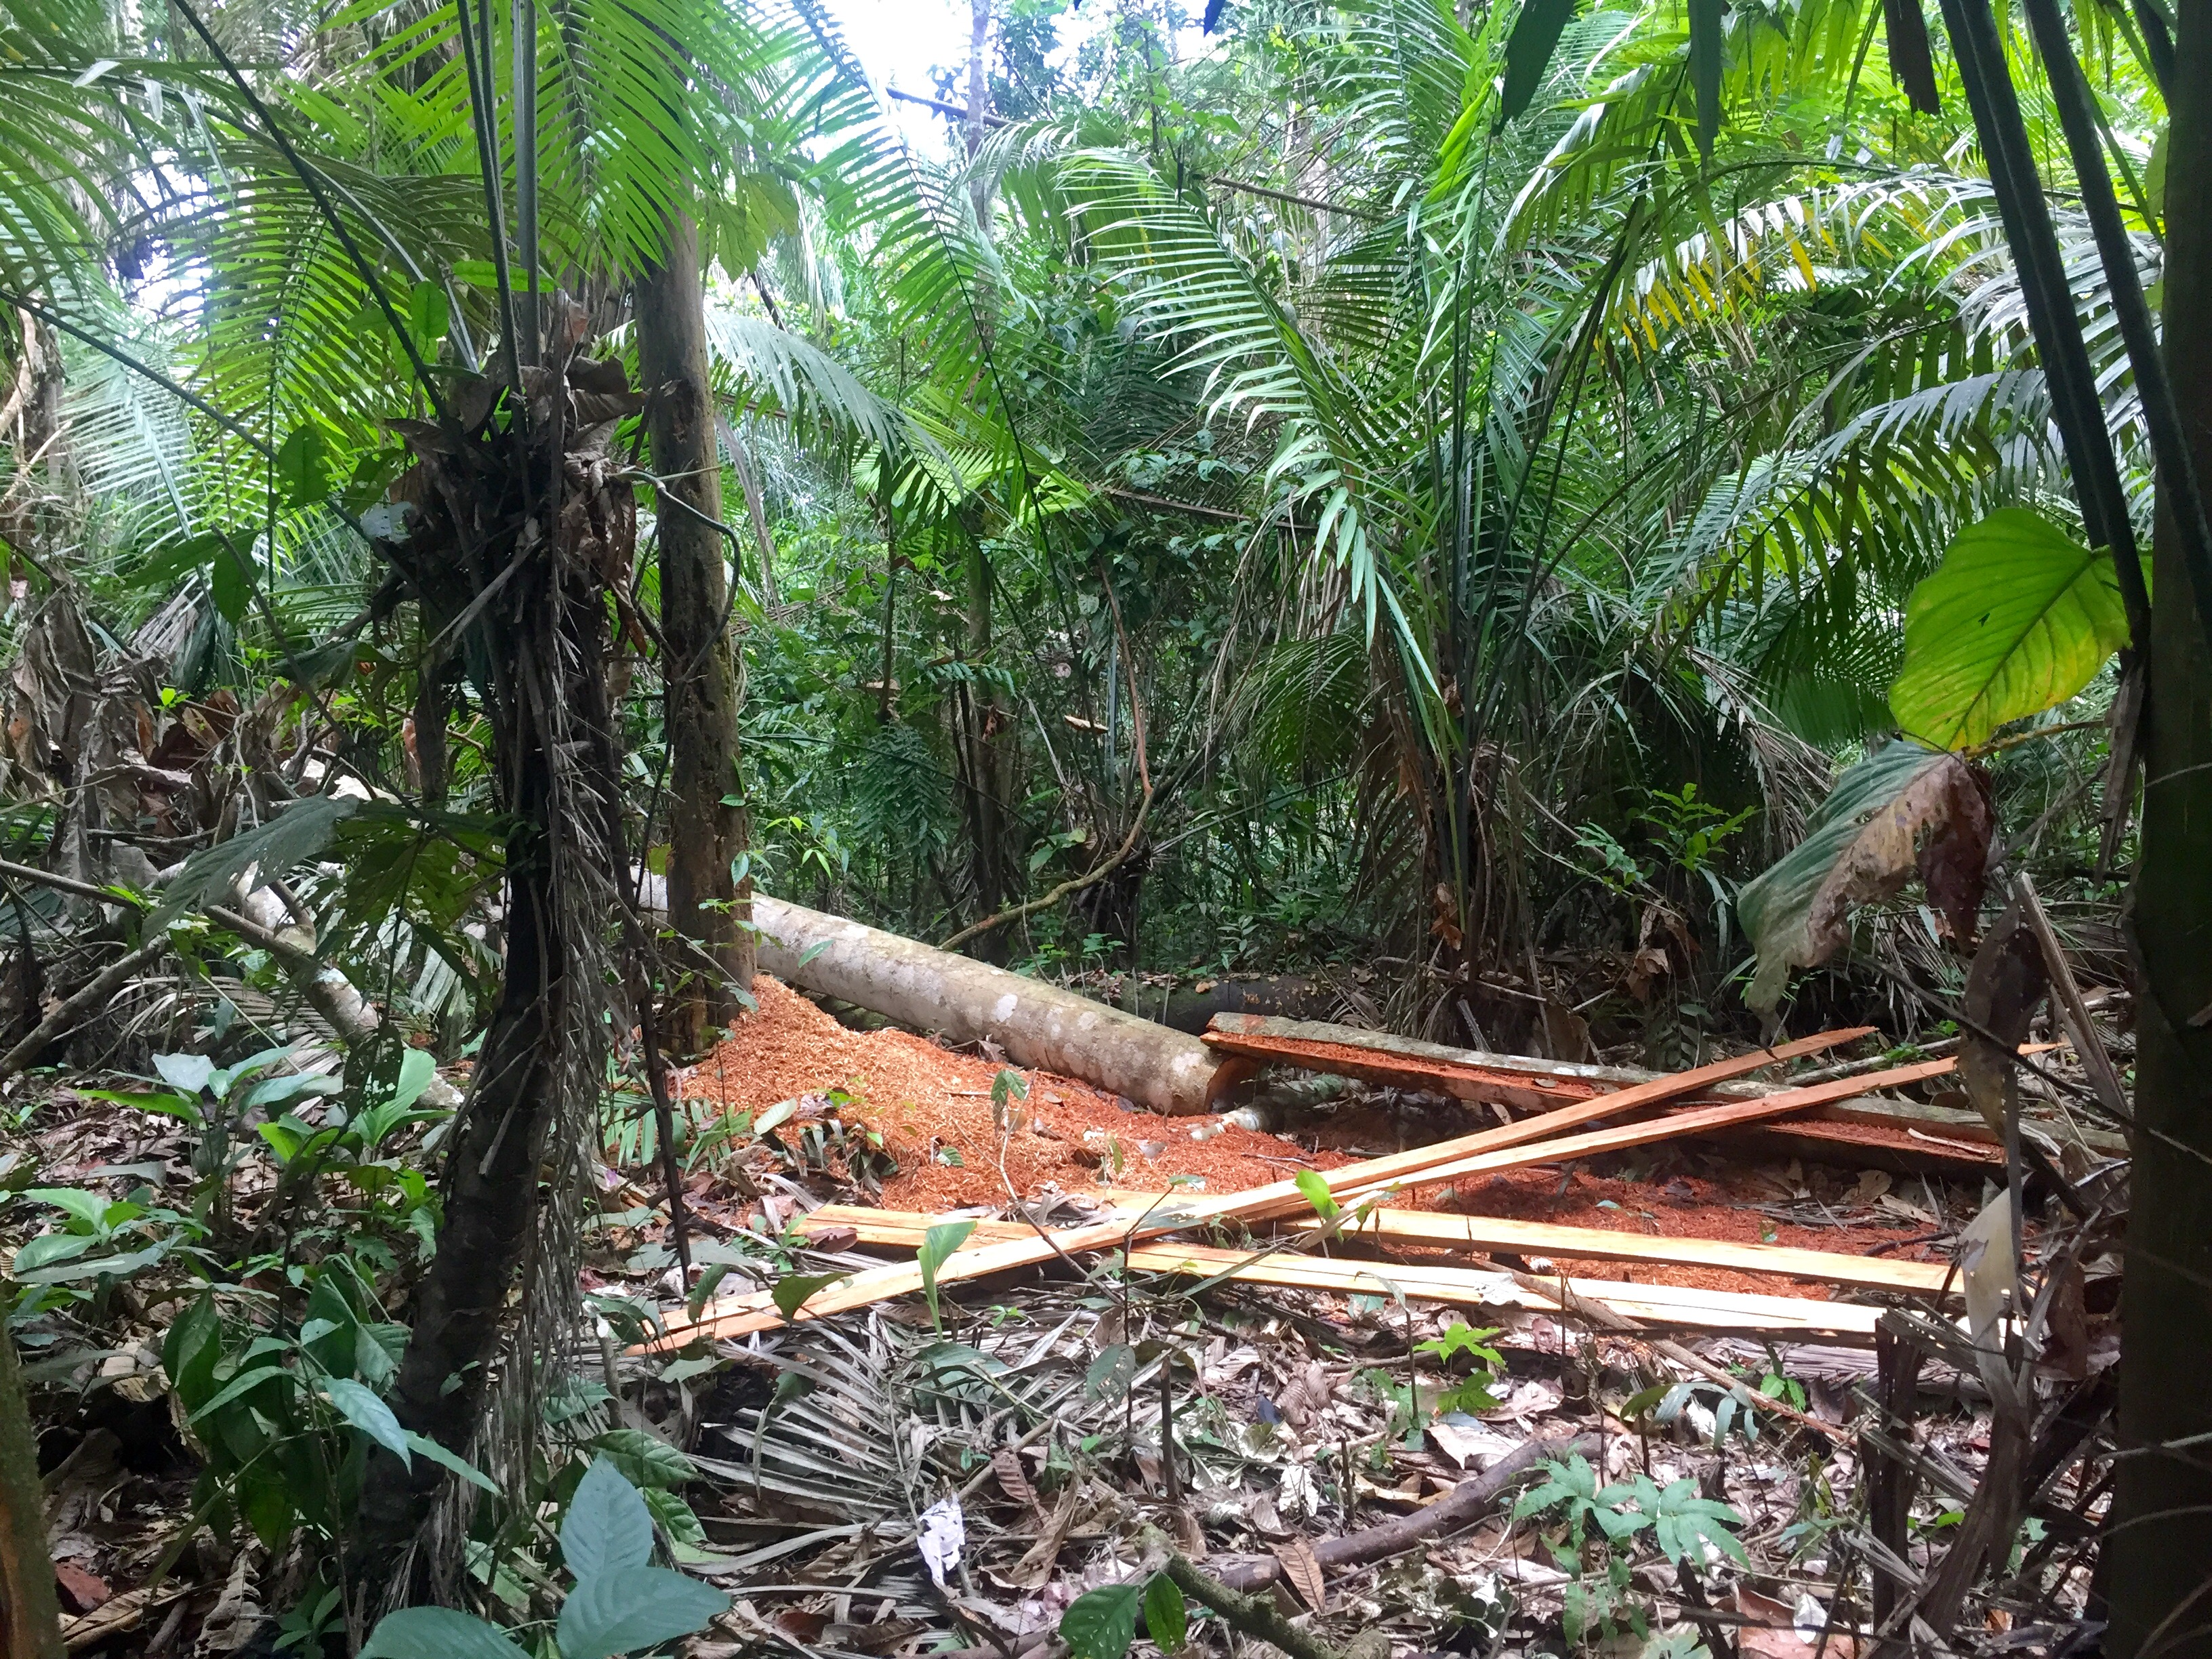 Cut down trees in the rainforest during our daily treks.